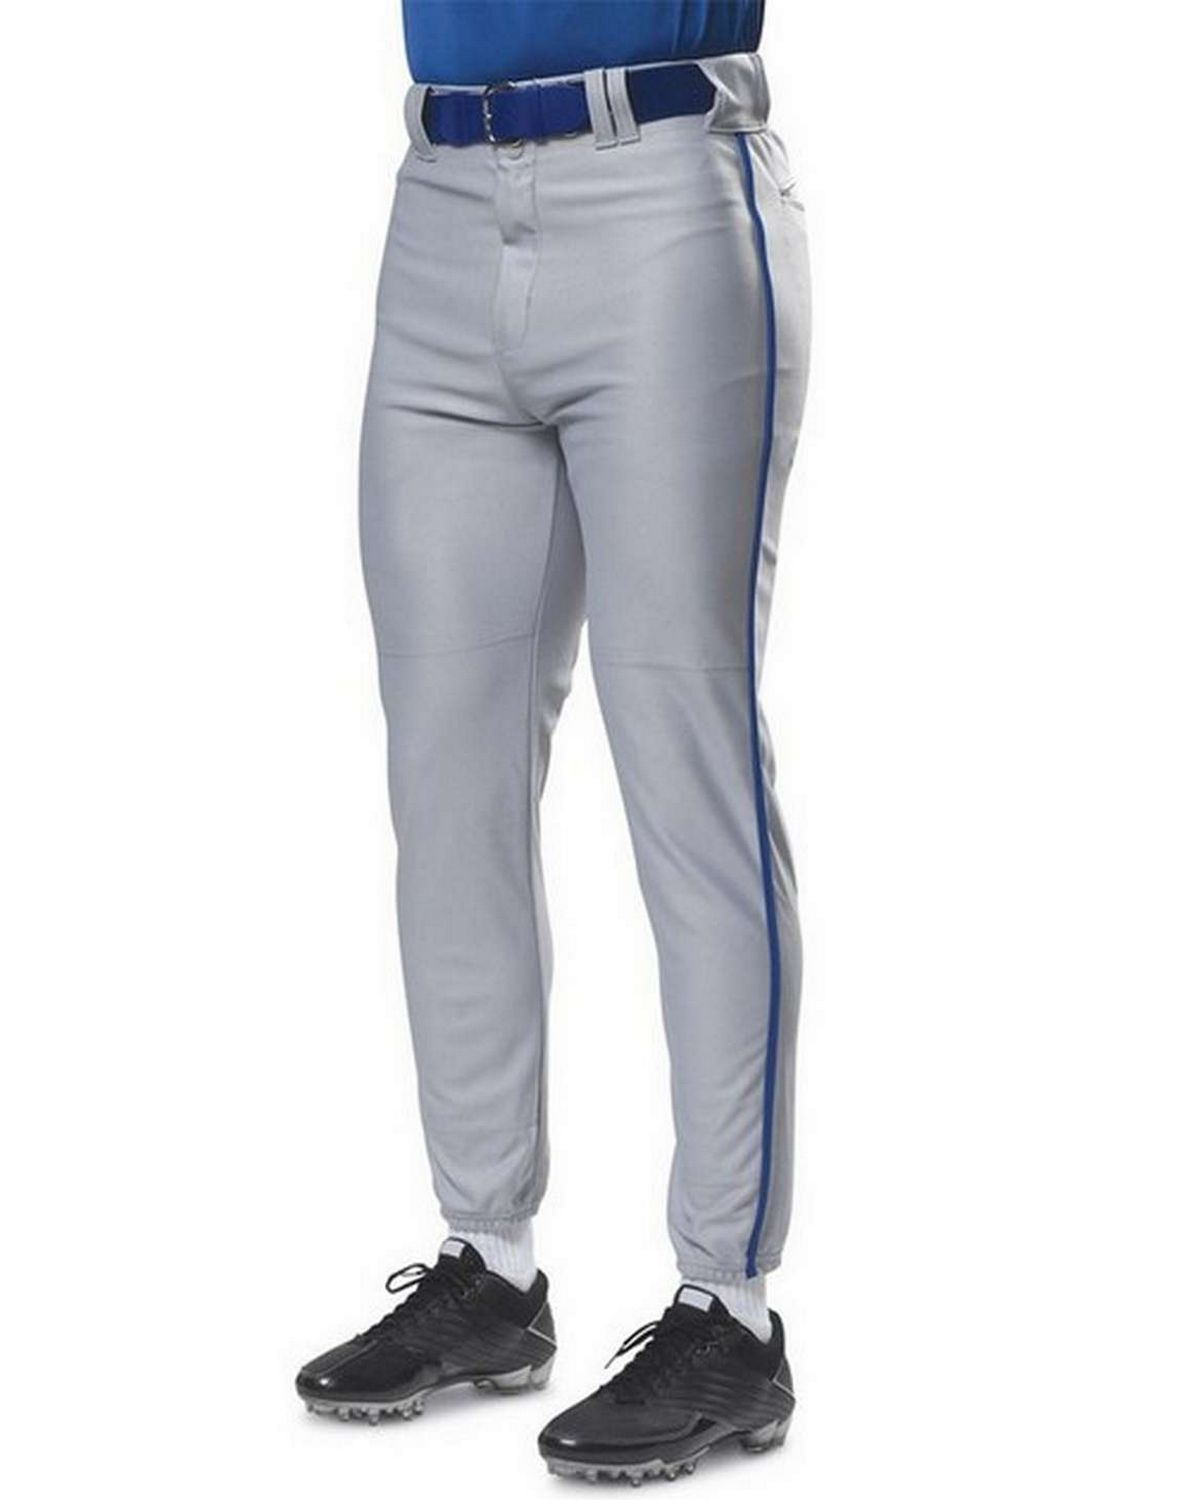 A4 NB6178 Youth Pro Style Elastic Bottom Baseball Pant